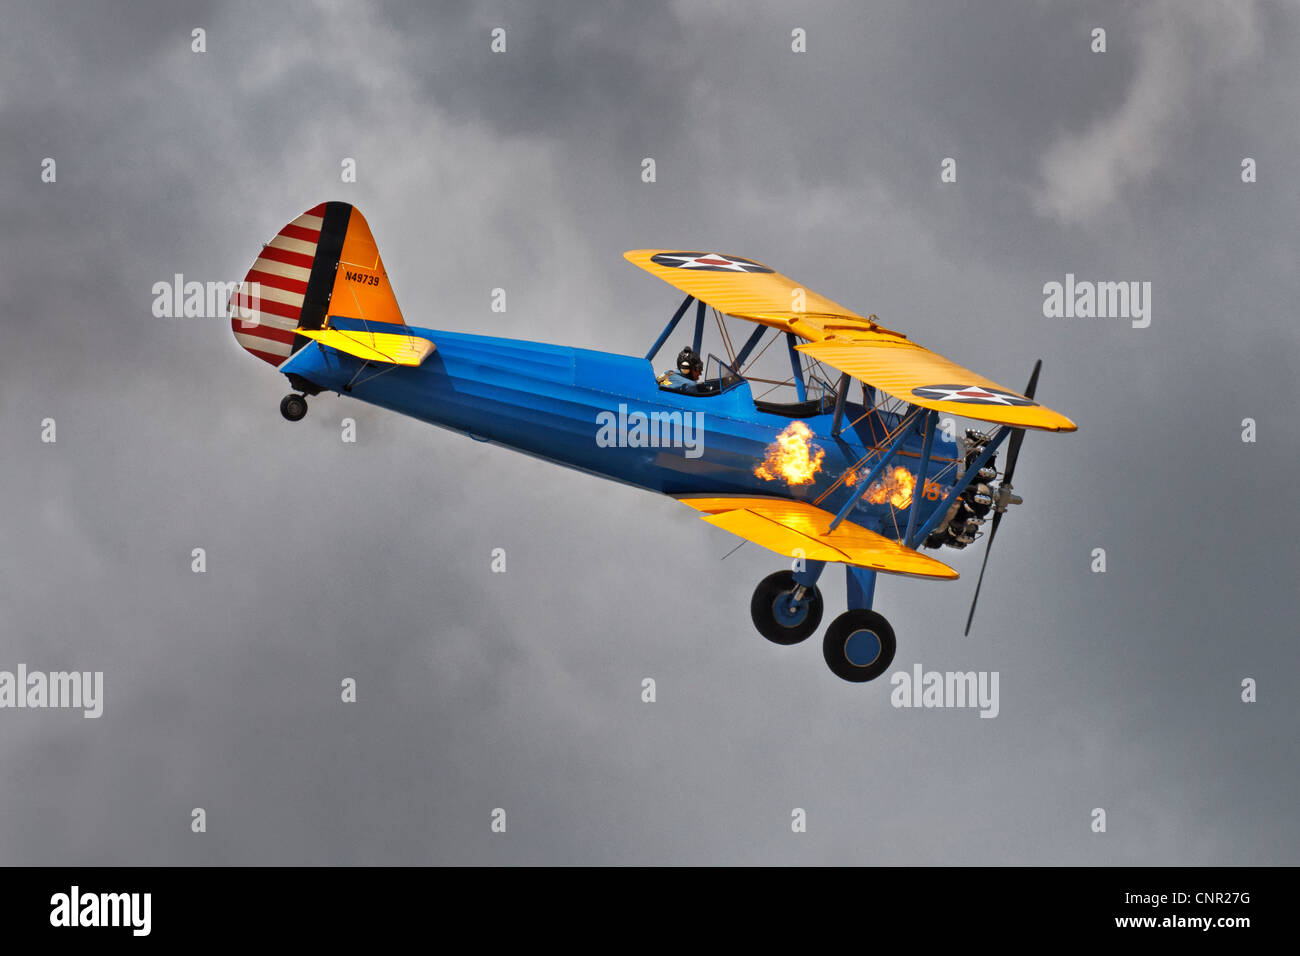 Boeing PT17 Stearman bi-plane American training aircraft with flames coming from the engine exhaust pots Stock Photo